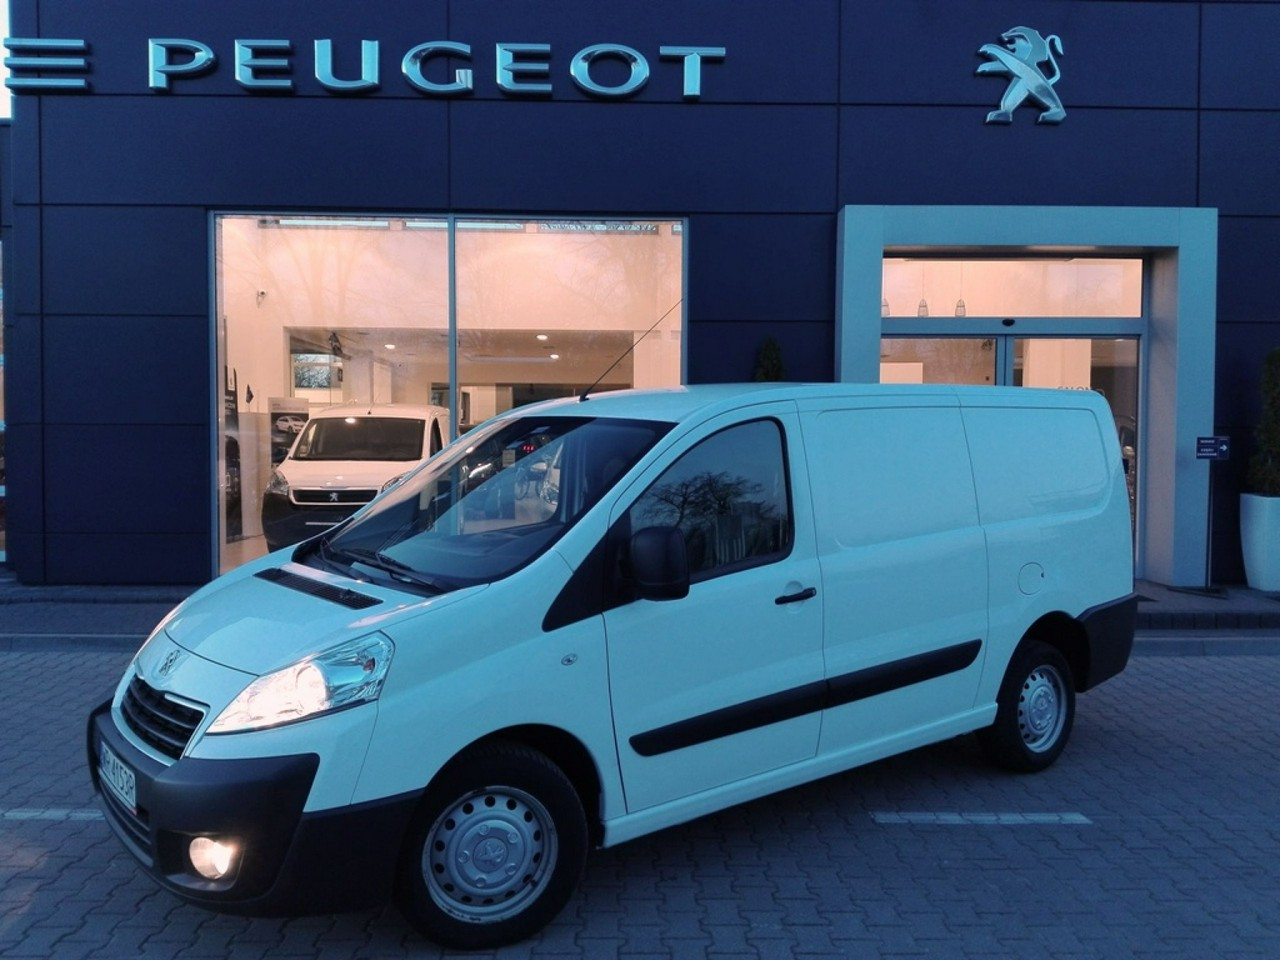 peugeot expert furgon blaszak 229 l2h1 samoch d u ywany z gwarancj auto z salonu peugeot. Black Bedroom Furniture Sets. Home Design Ideas